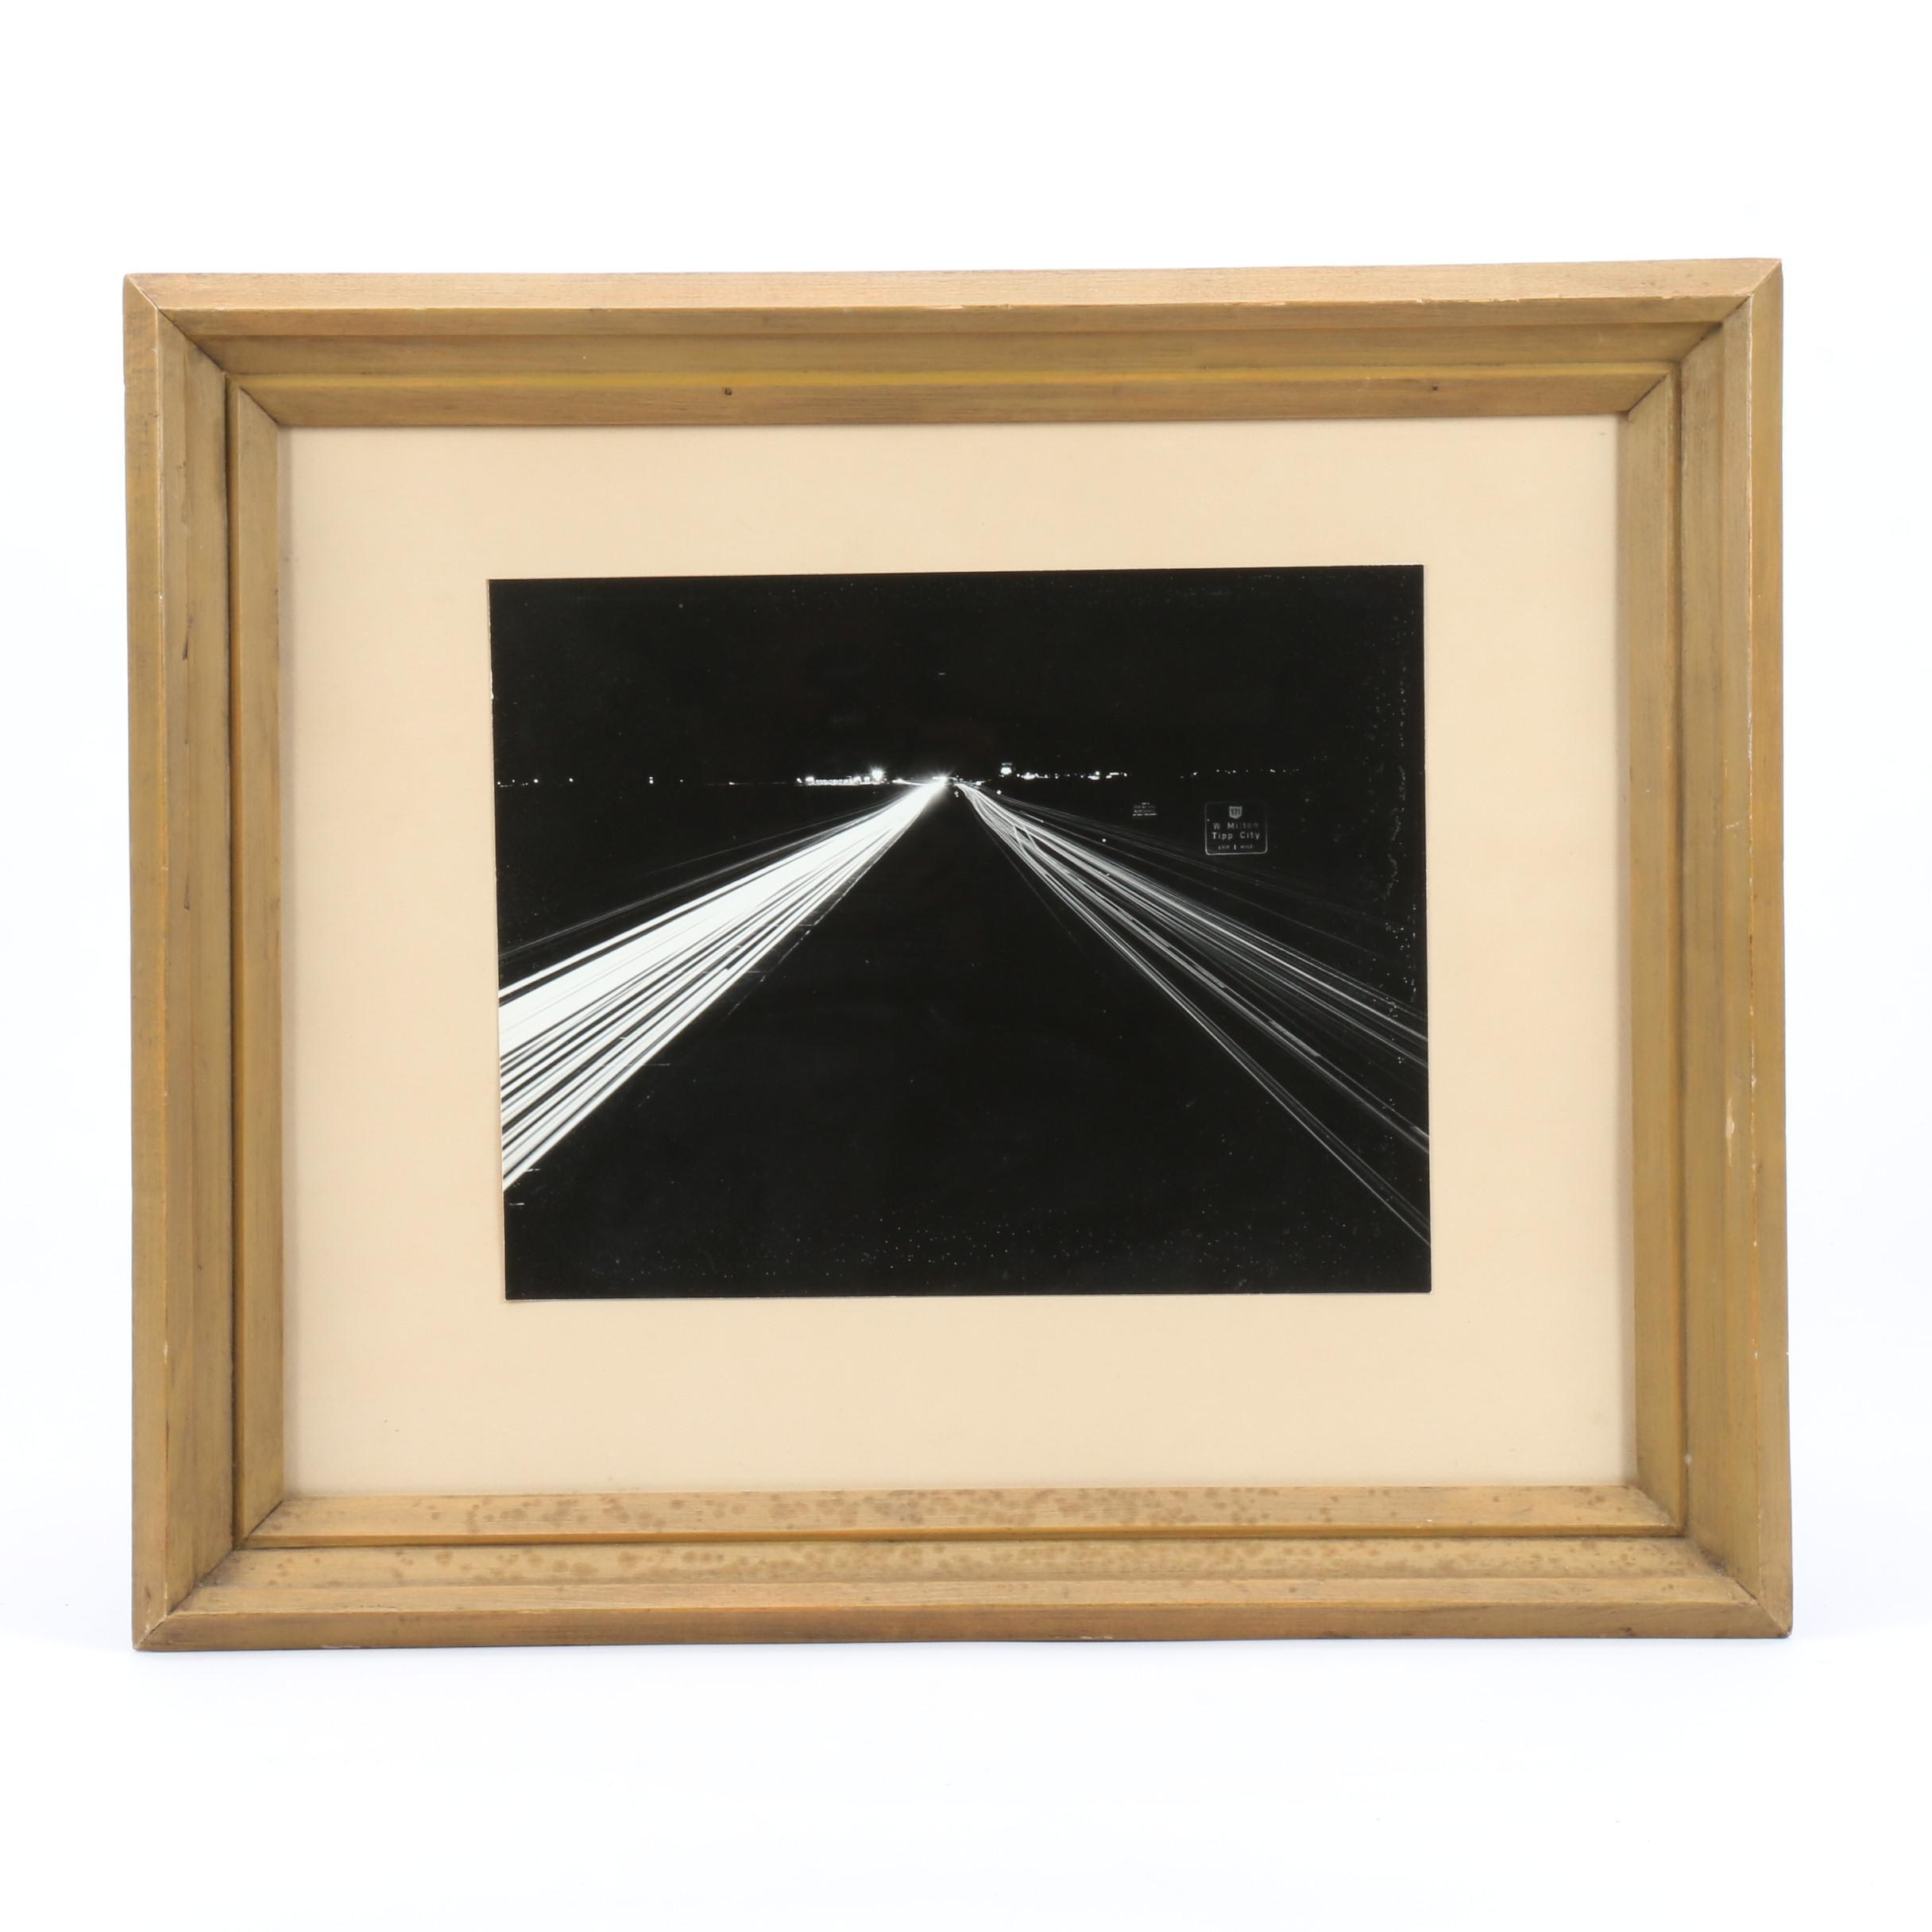 Black and White Photograph of Nocturnal Highway Scene